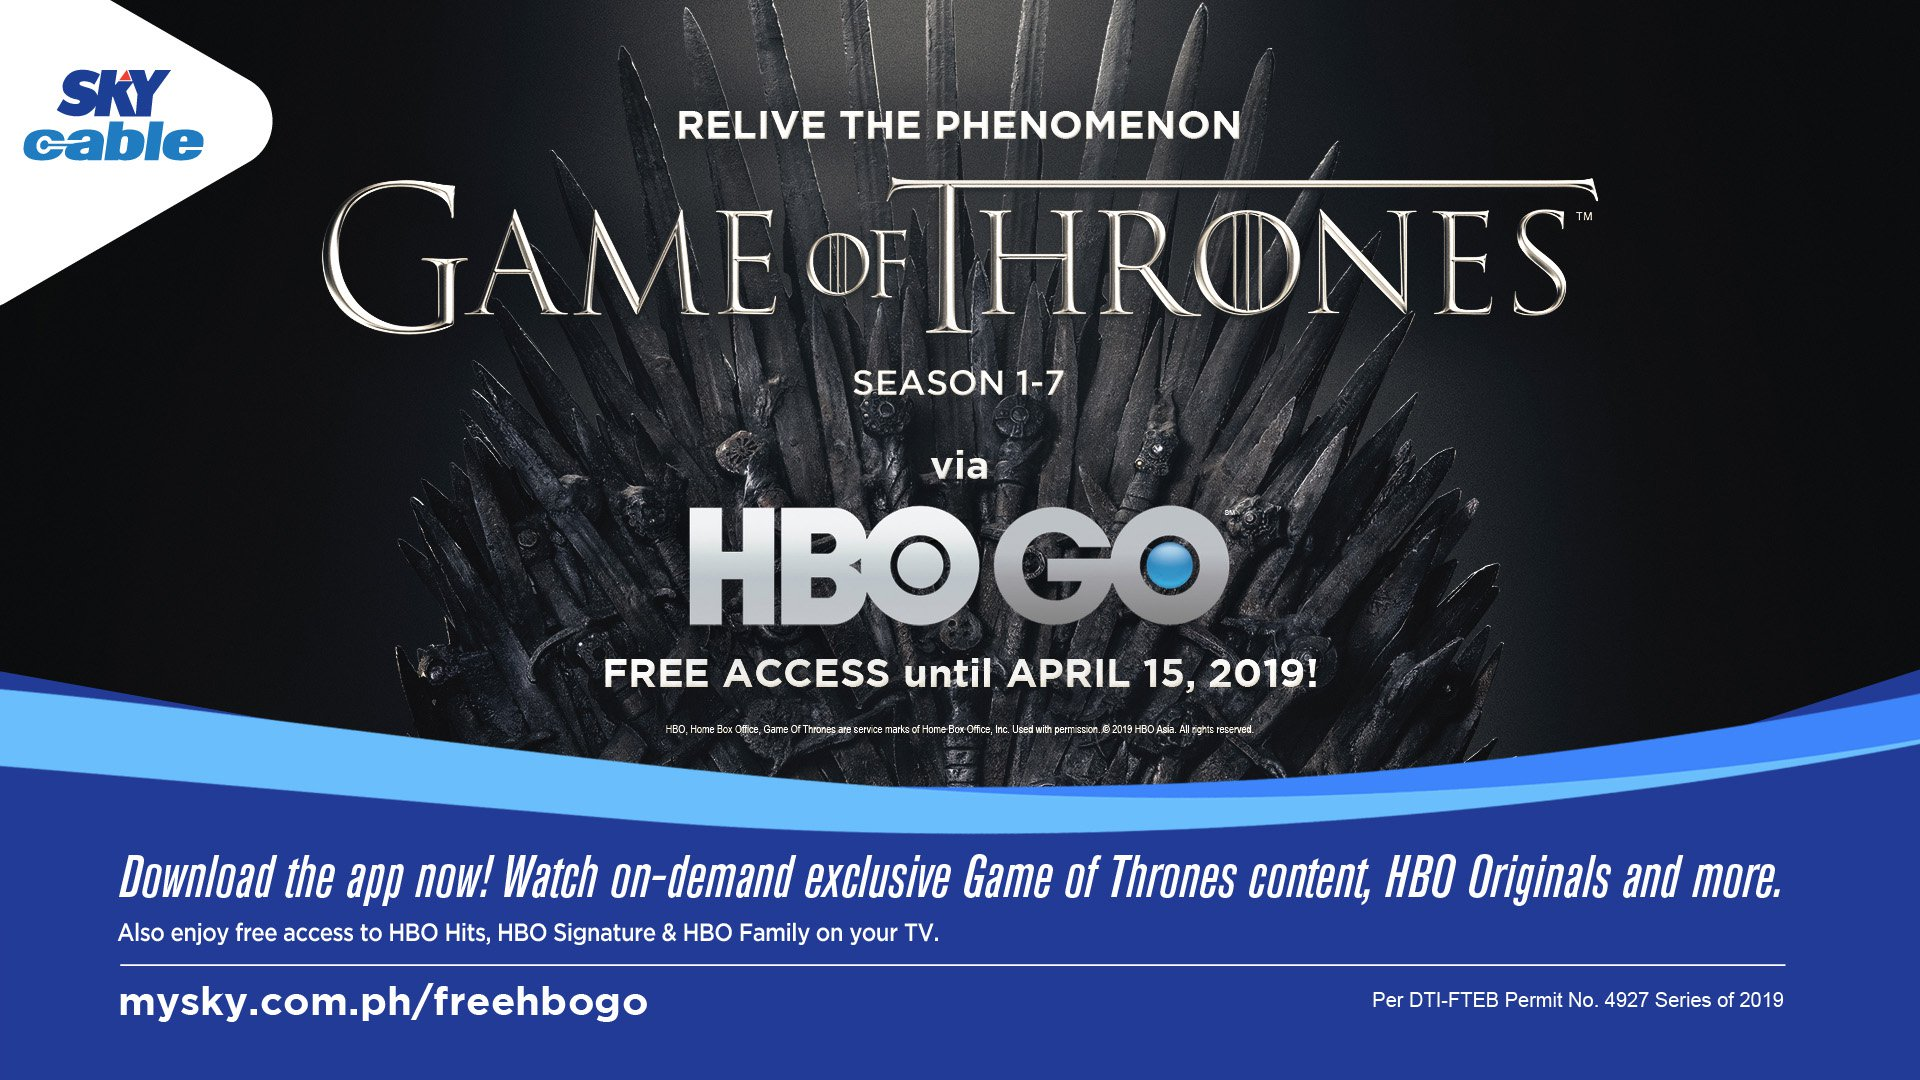 HBO Go Free Access